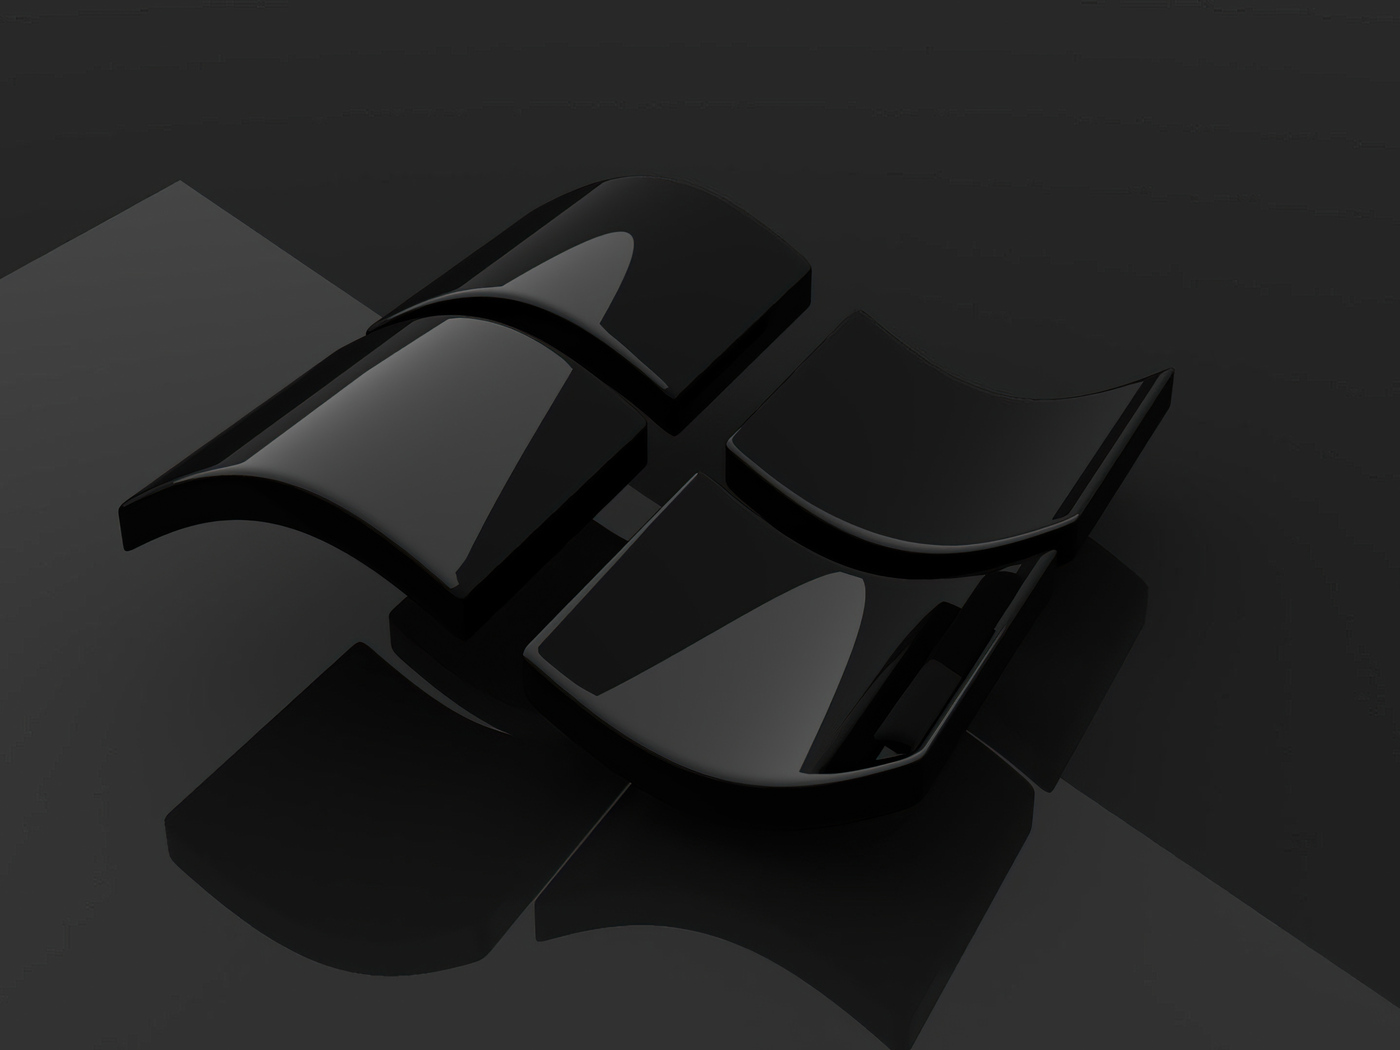 windows-logo-black-minimal-4k-he.jpg